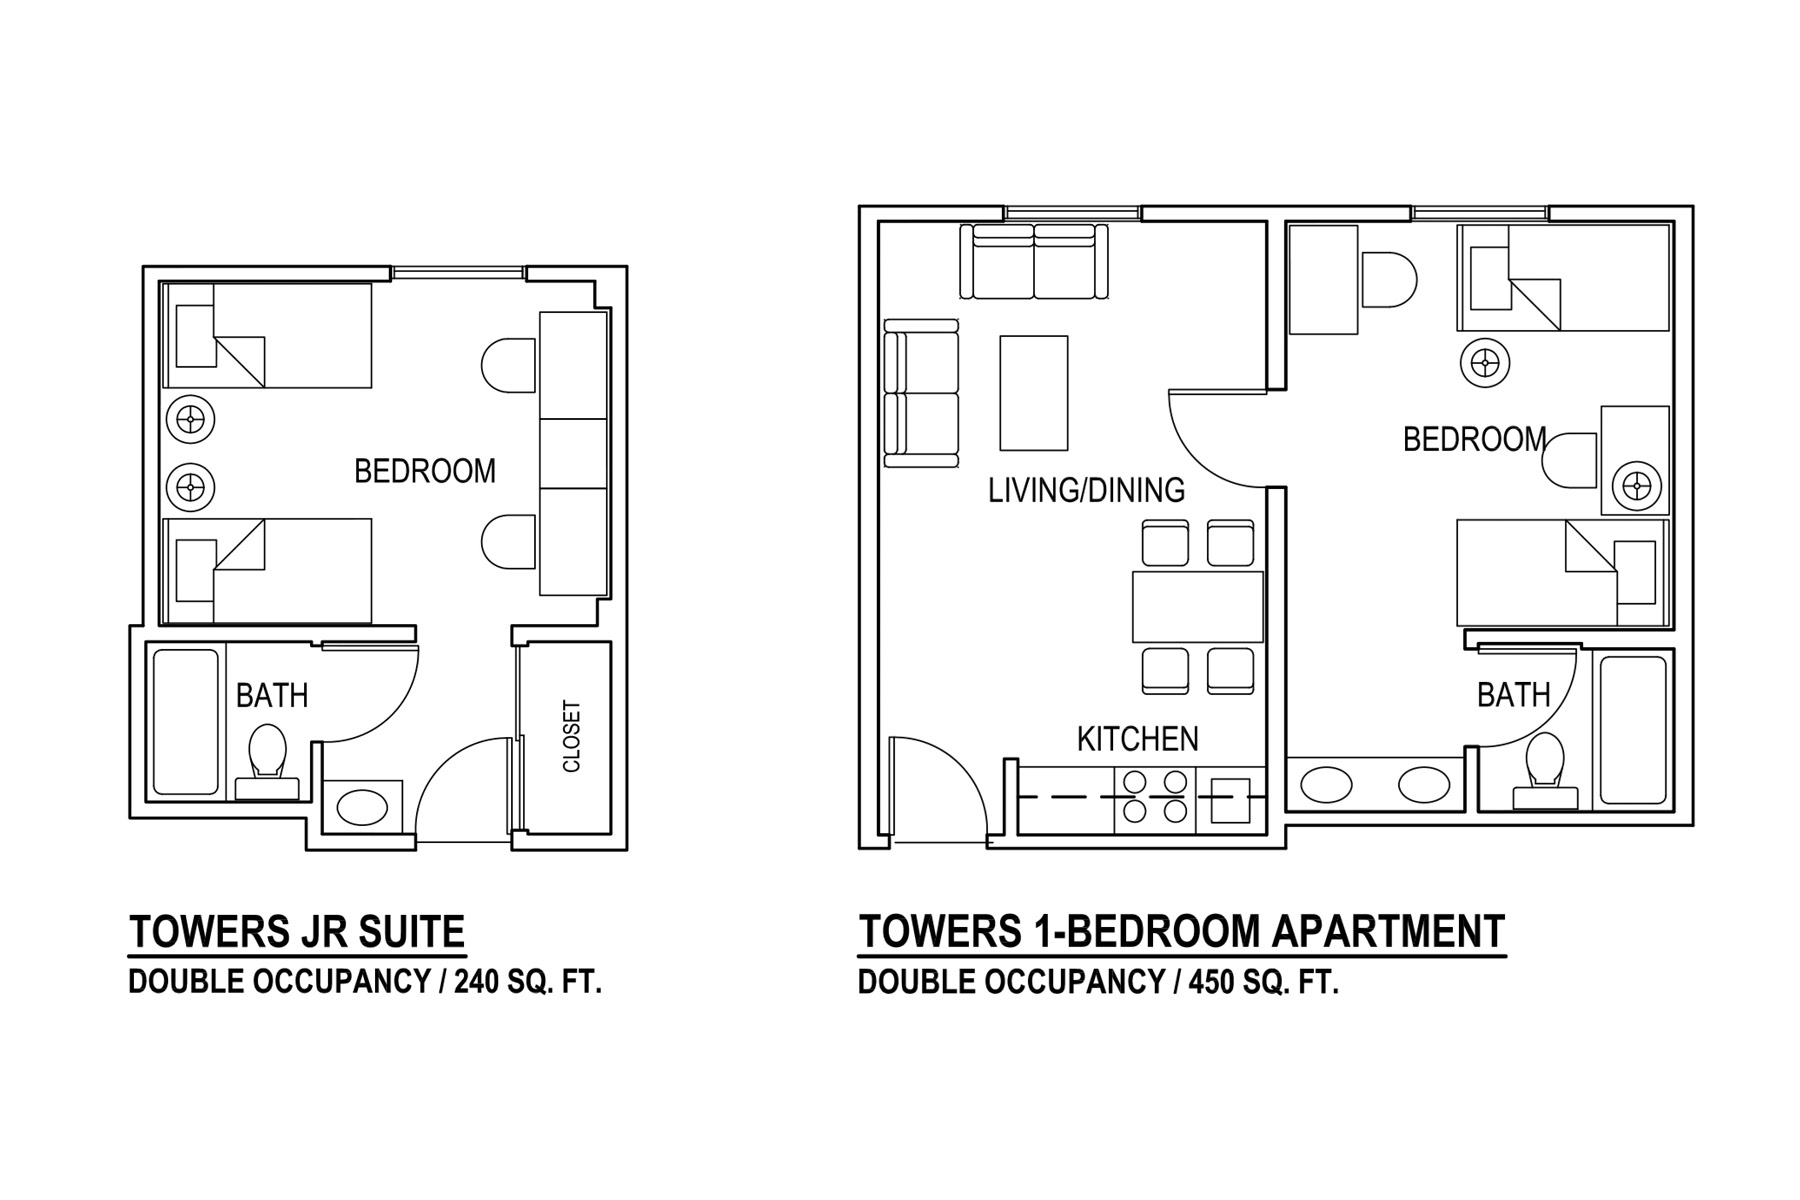 Towers JR Suite Double Occupancy / 240 sq. ft | Towers 1-Bedroom Apartment Double Occupancy / 450 sq. ft.